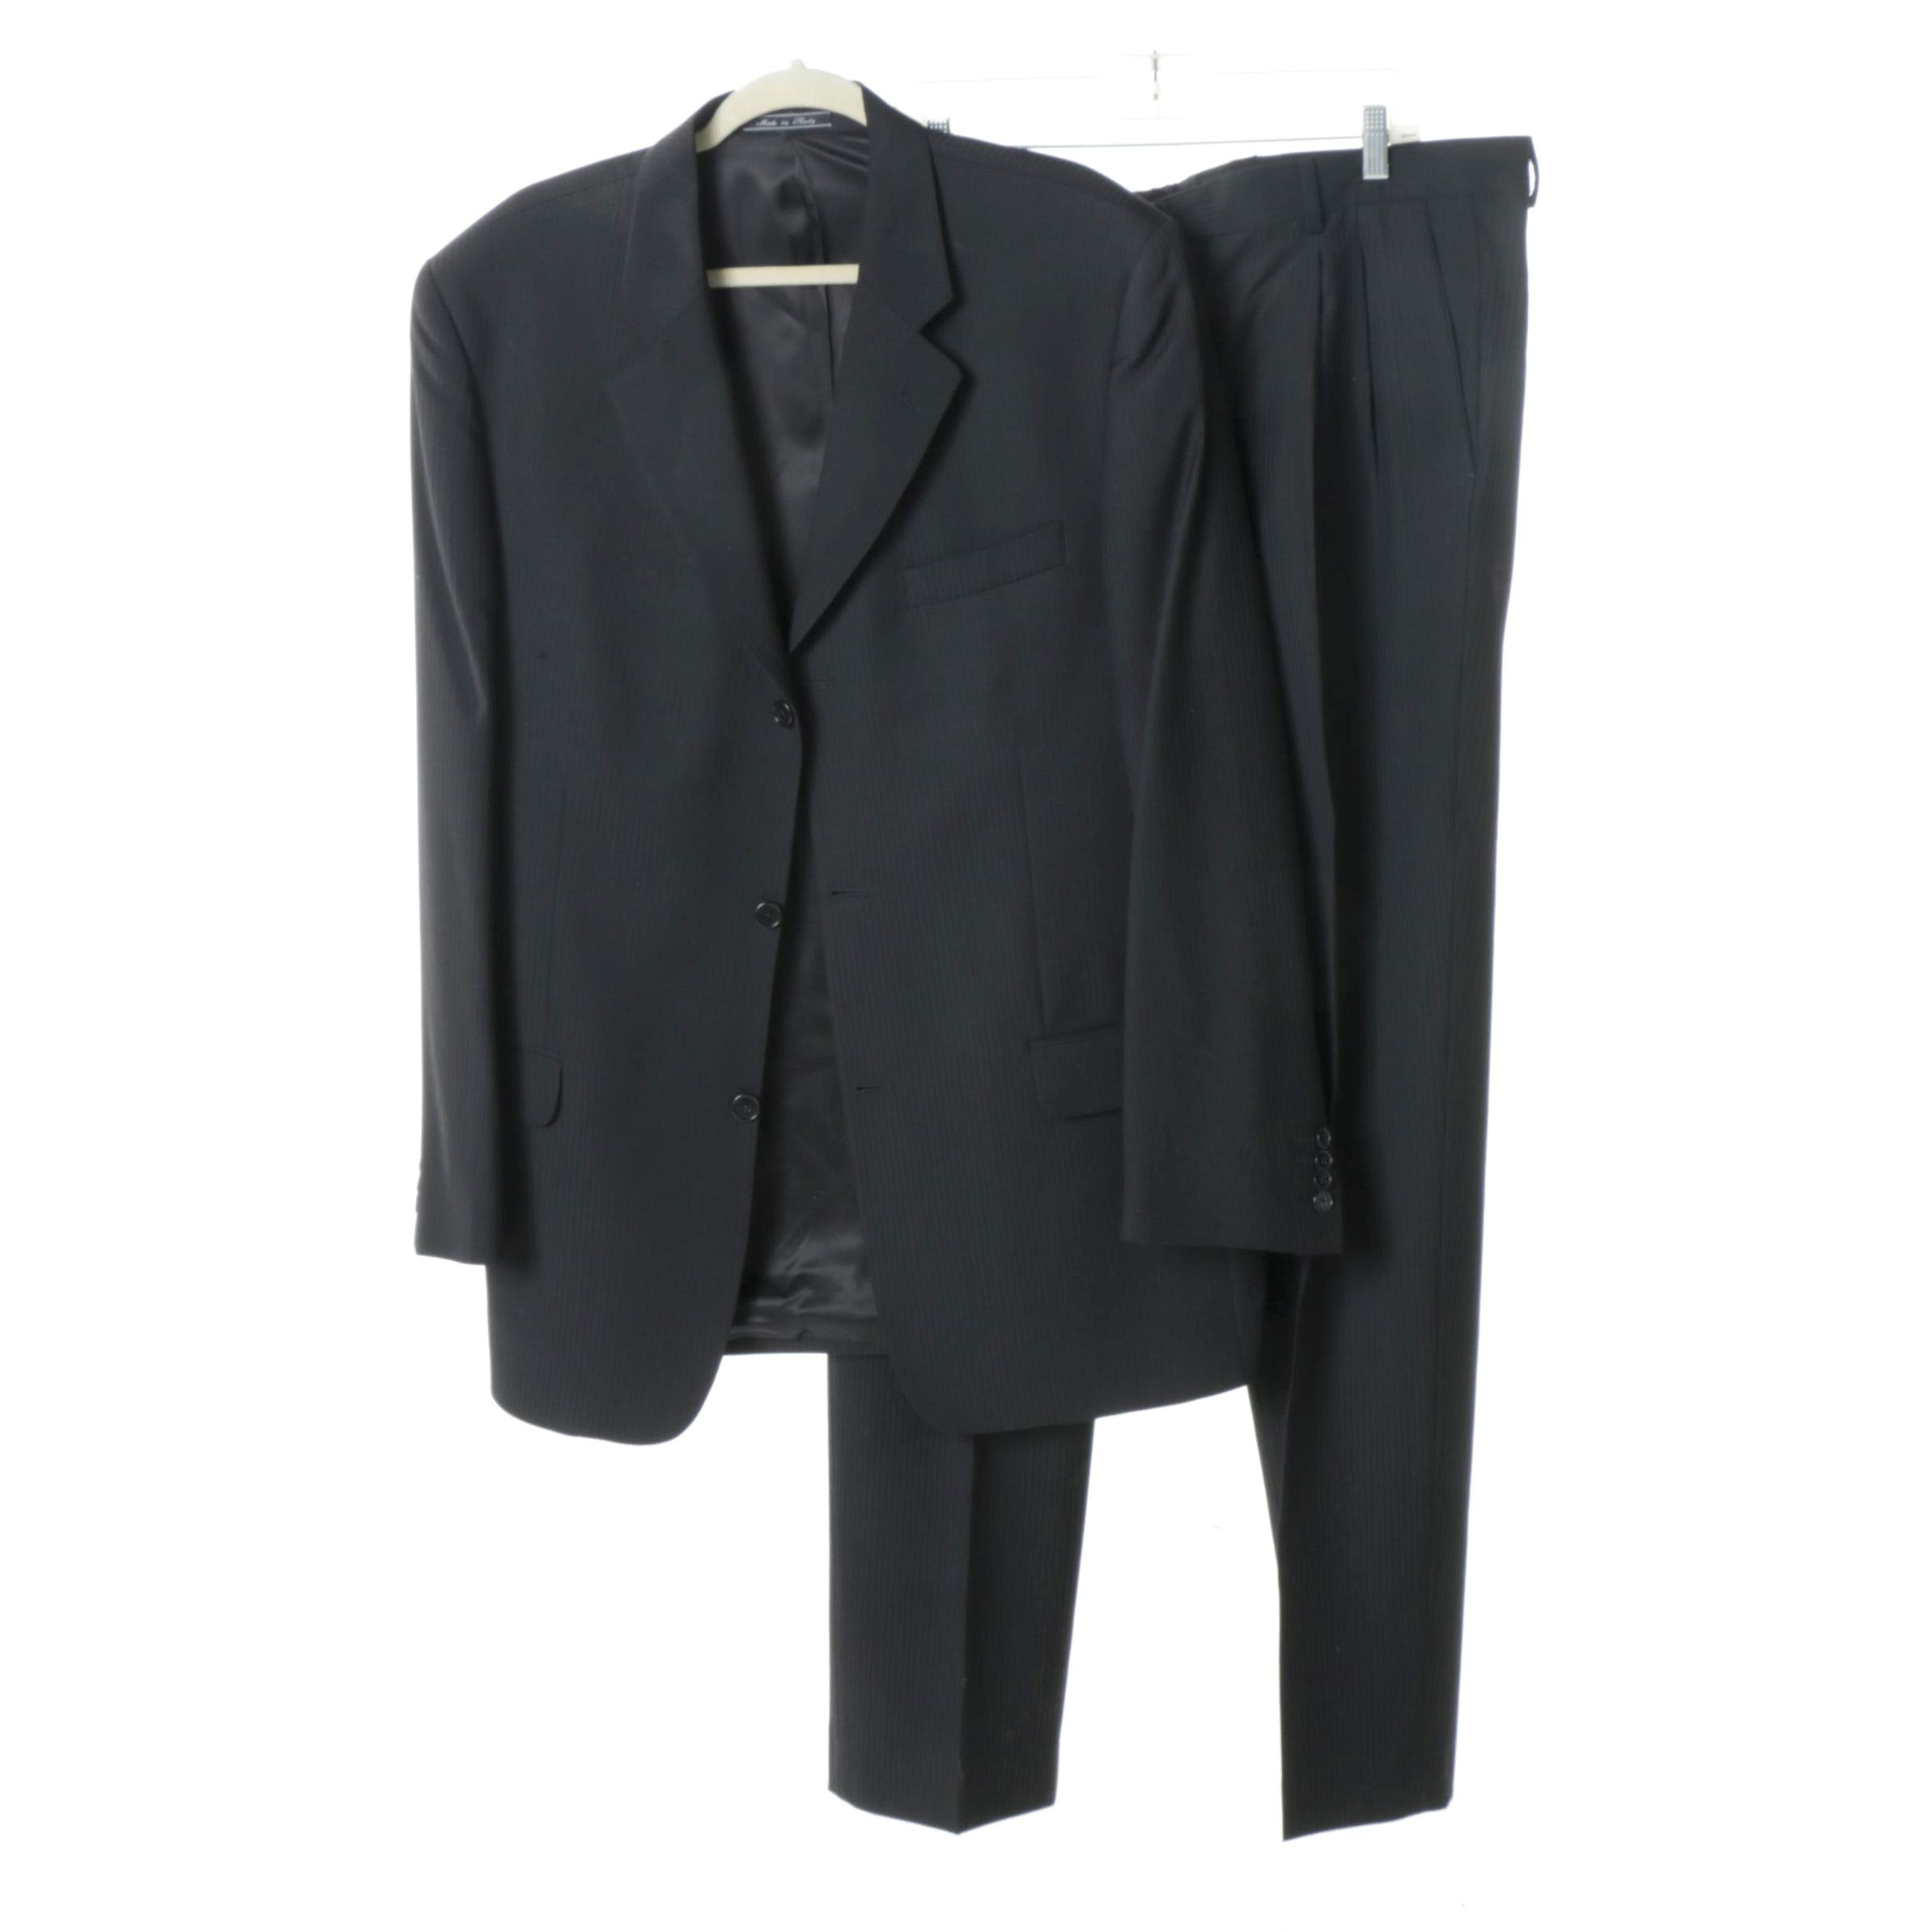 Men's Bachrach Black Single-Breasted Suit